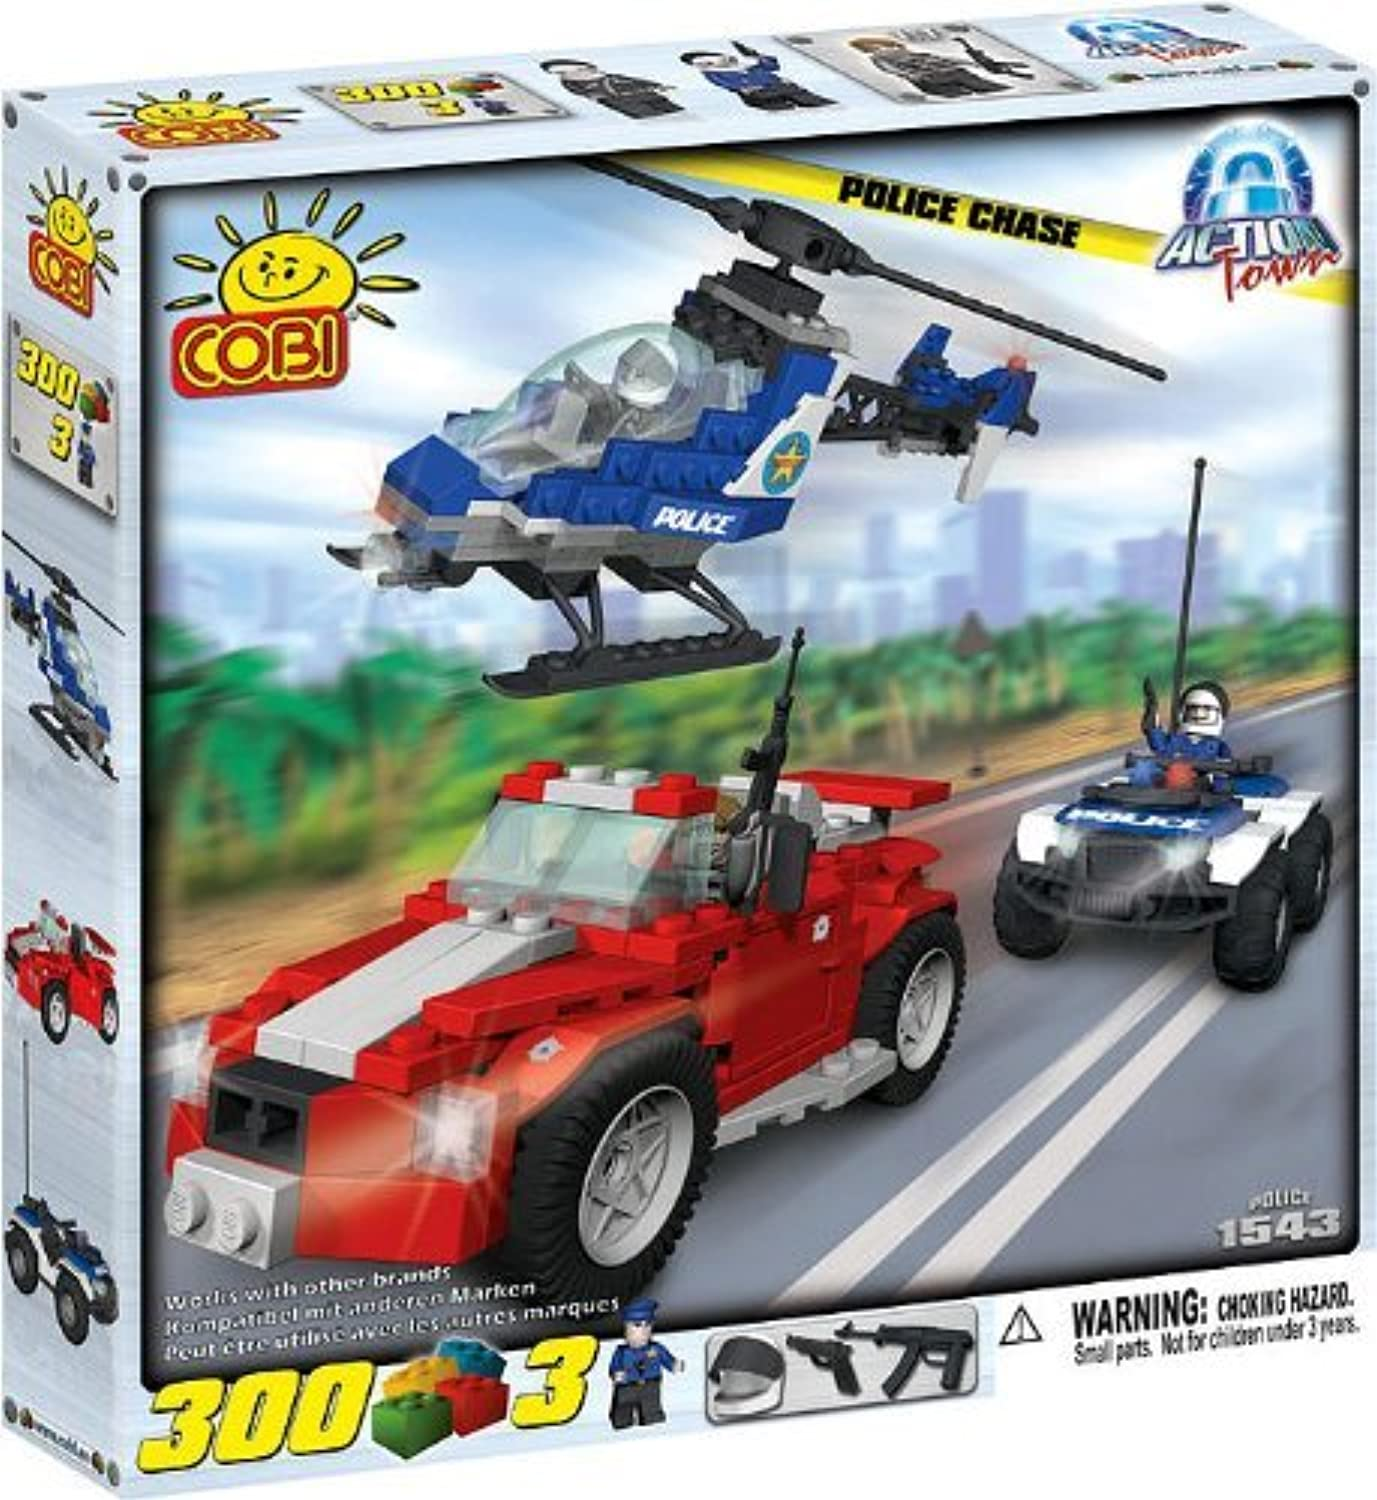 Cobi Action Town Police Chase by COBI